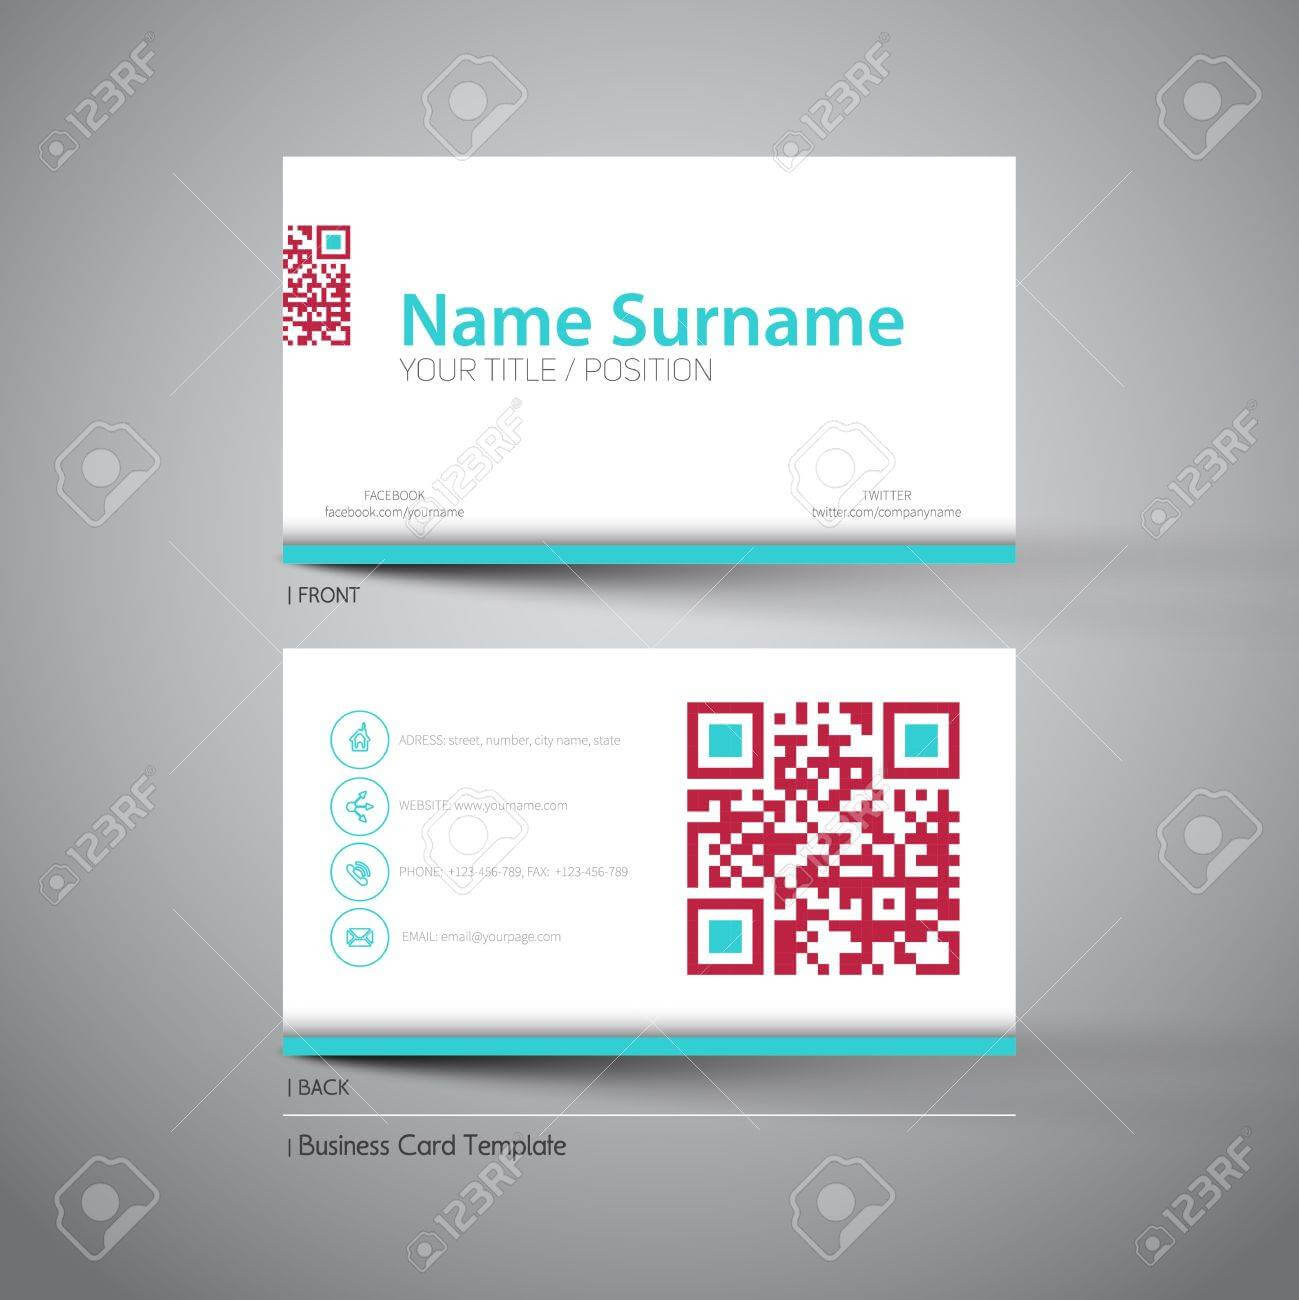 Modern Simple Light Business Card Template With Big Qr Code Intended For Qr Code Business Card Template